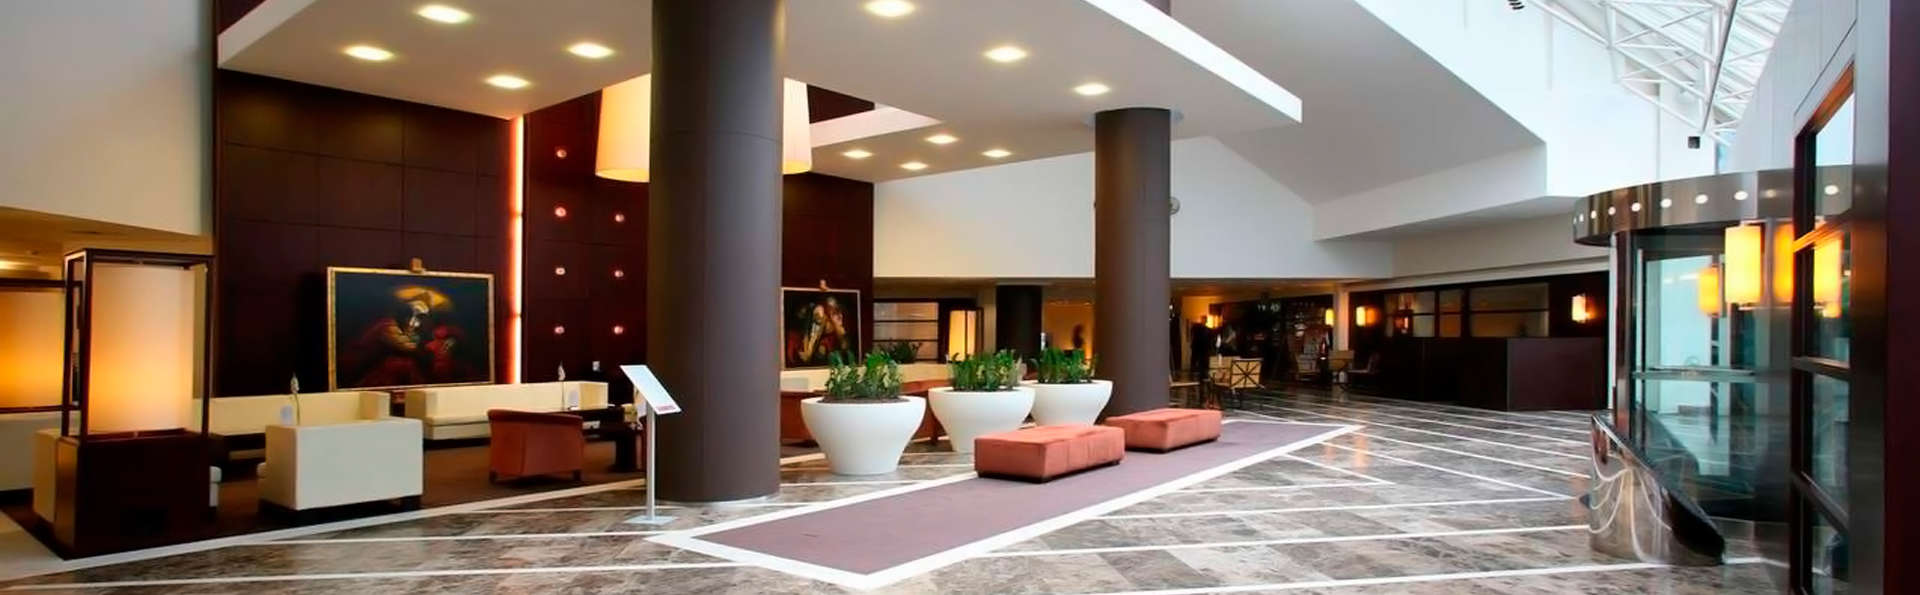 Ramada Plaza Antwerp - EDIT_lobby53.jpg